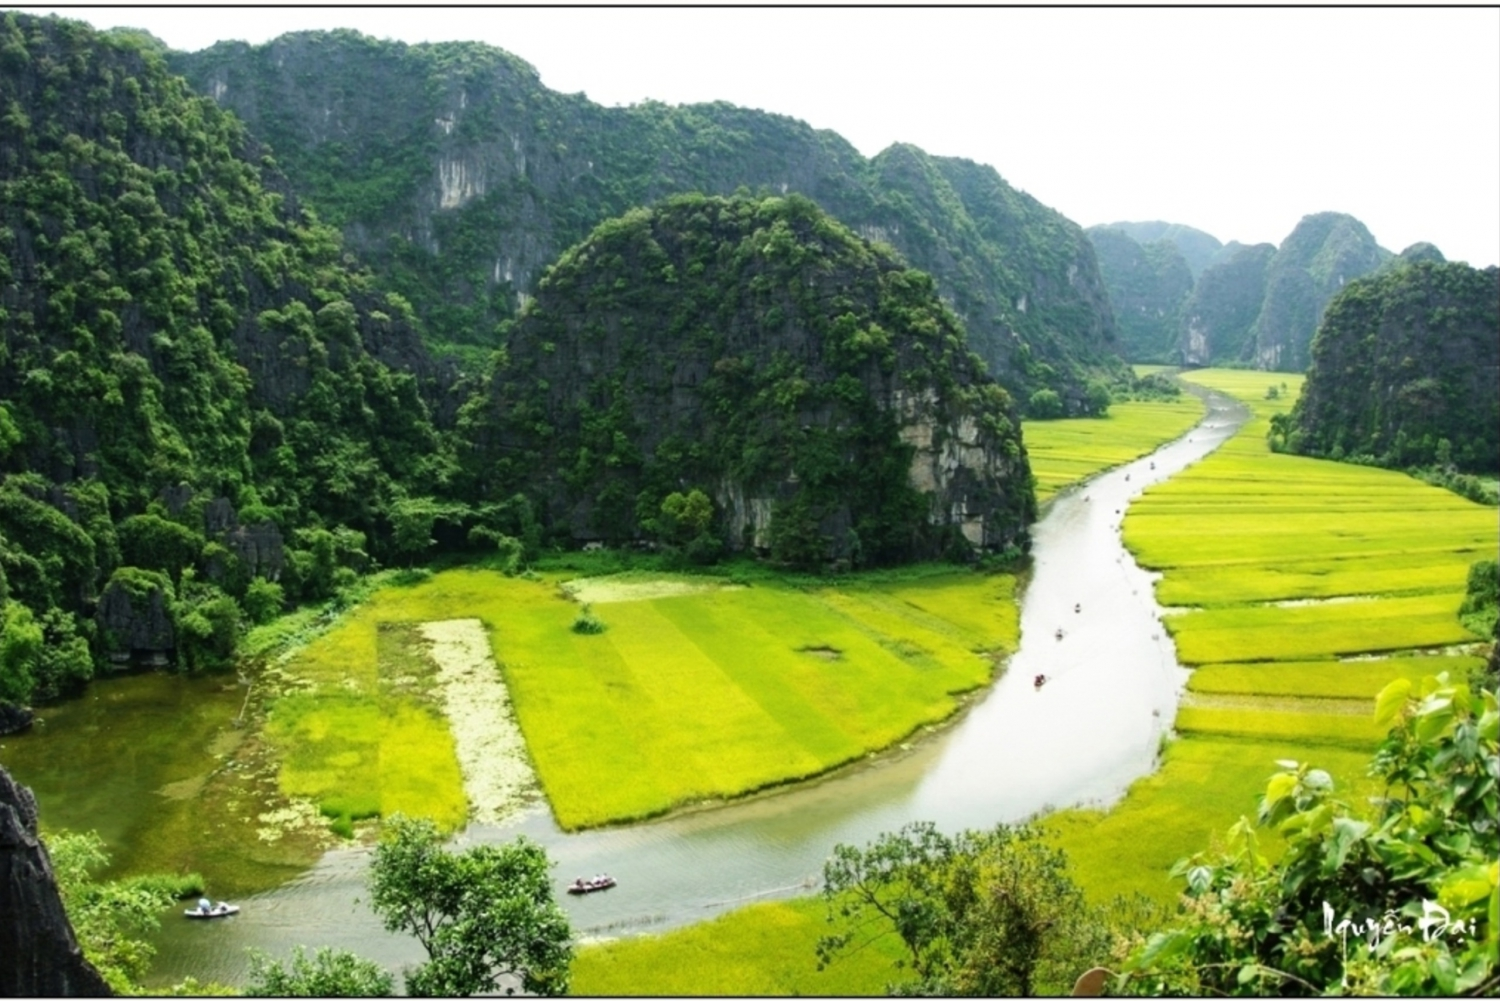 Full Day Hoa Lu & Tam Coc: Small Group Tour & Buffet Lunch